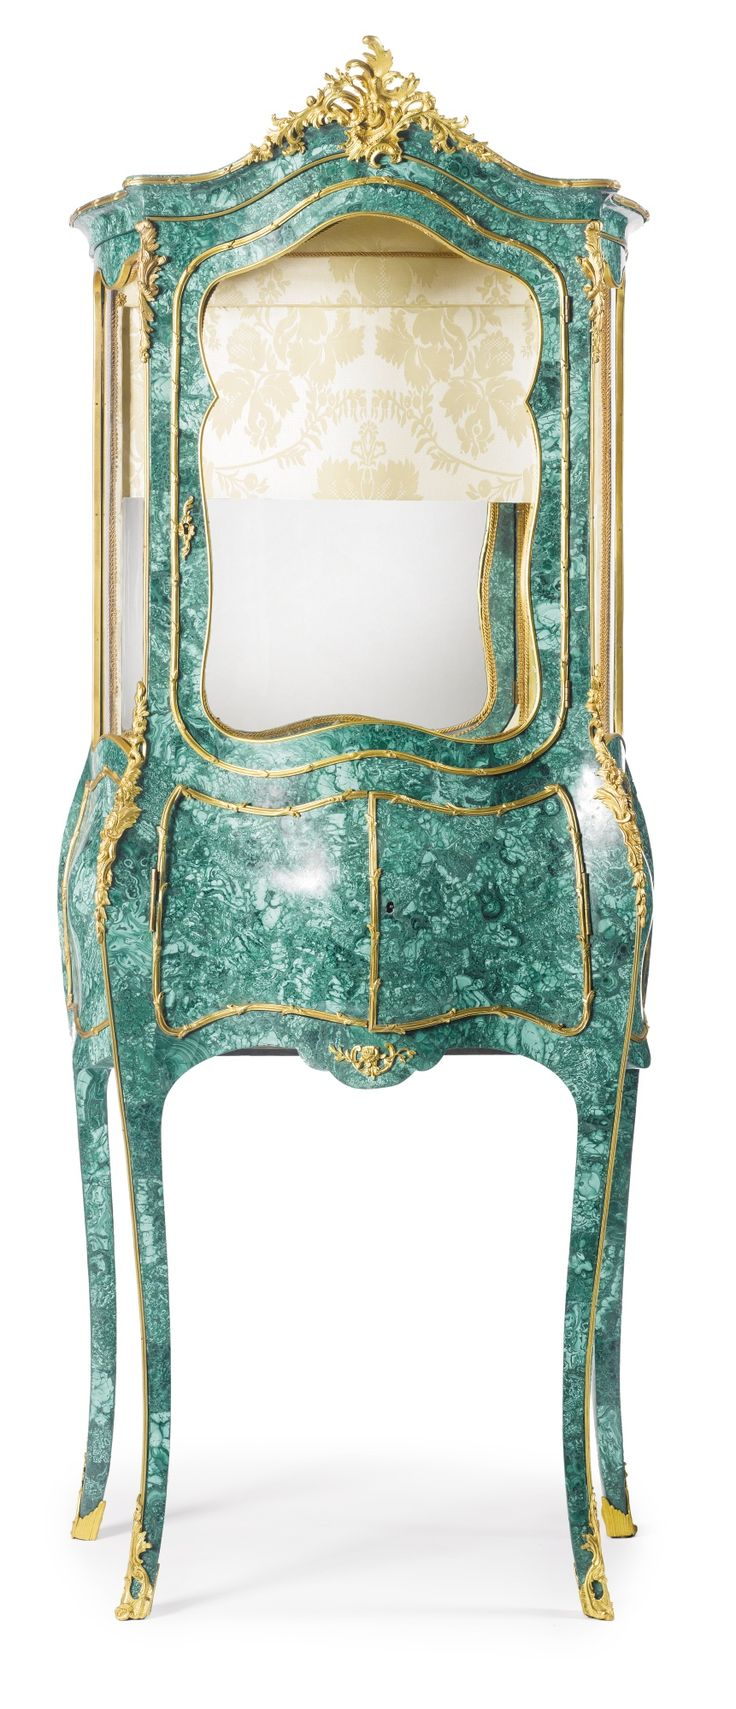 Auction company 751 walnut victorian marble top parlor table ca 1870 - A Louis Xv Style Gilt Bronze Mounted Malachite Veneered Vitrine France Early 20th Century